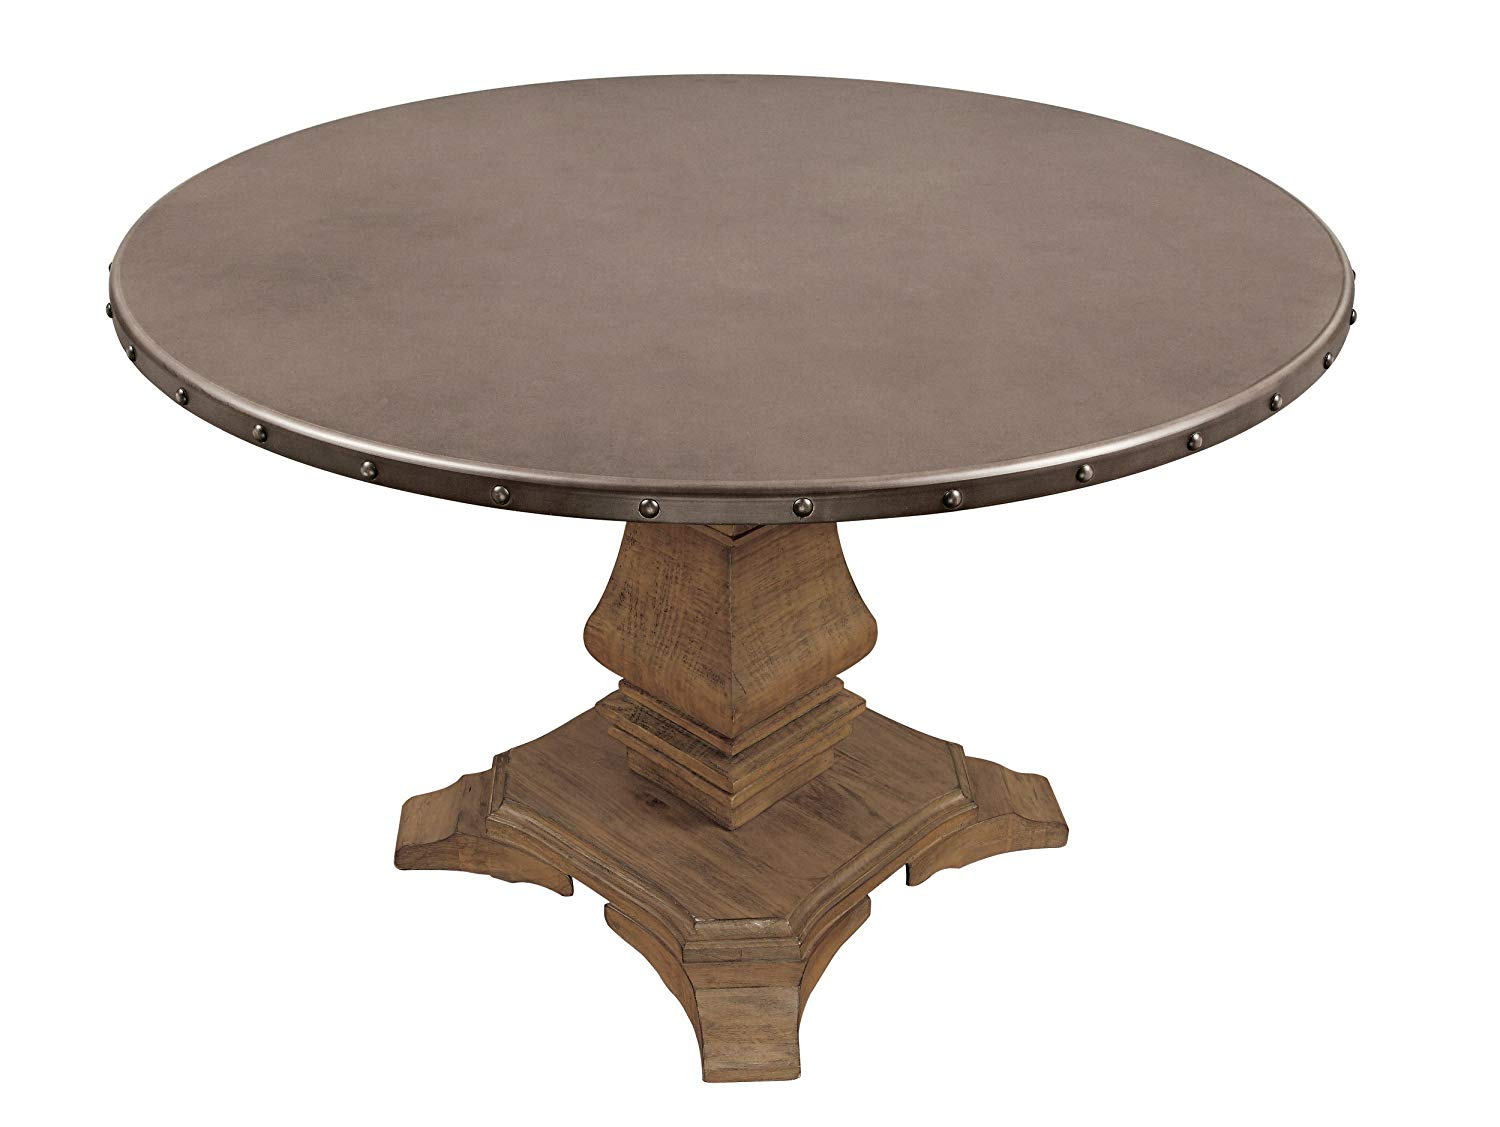 homelegance anna claire round table with pedestal base orf zinc accent and nail head banding rusticated top kitchen dining marine style lighting nautical lamps fire pit chairs